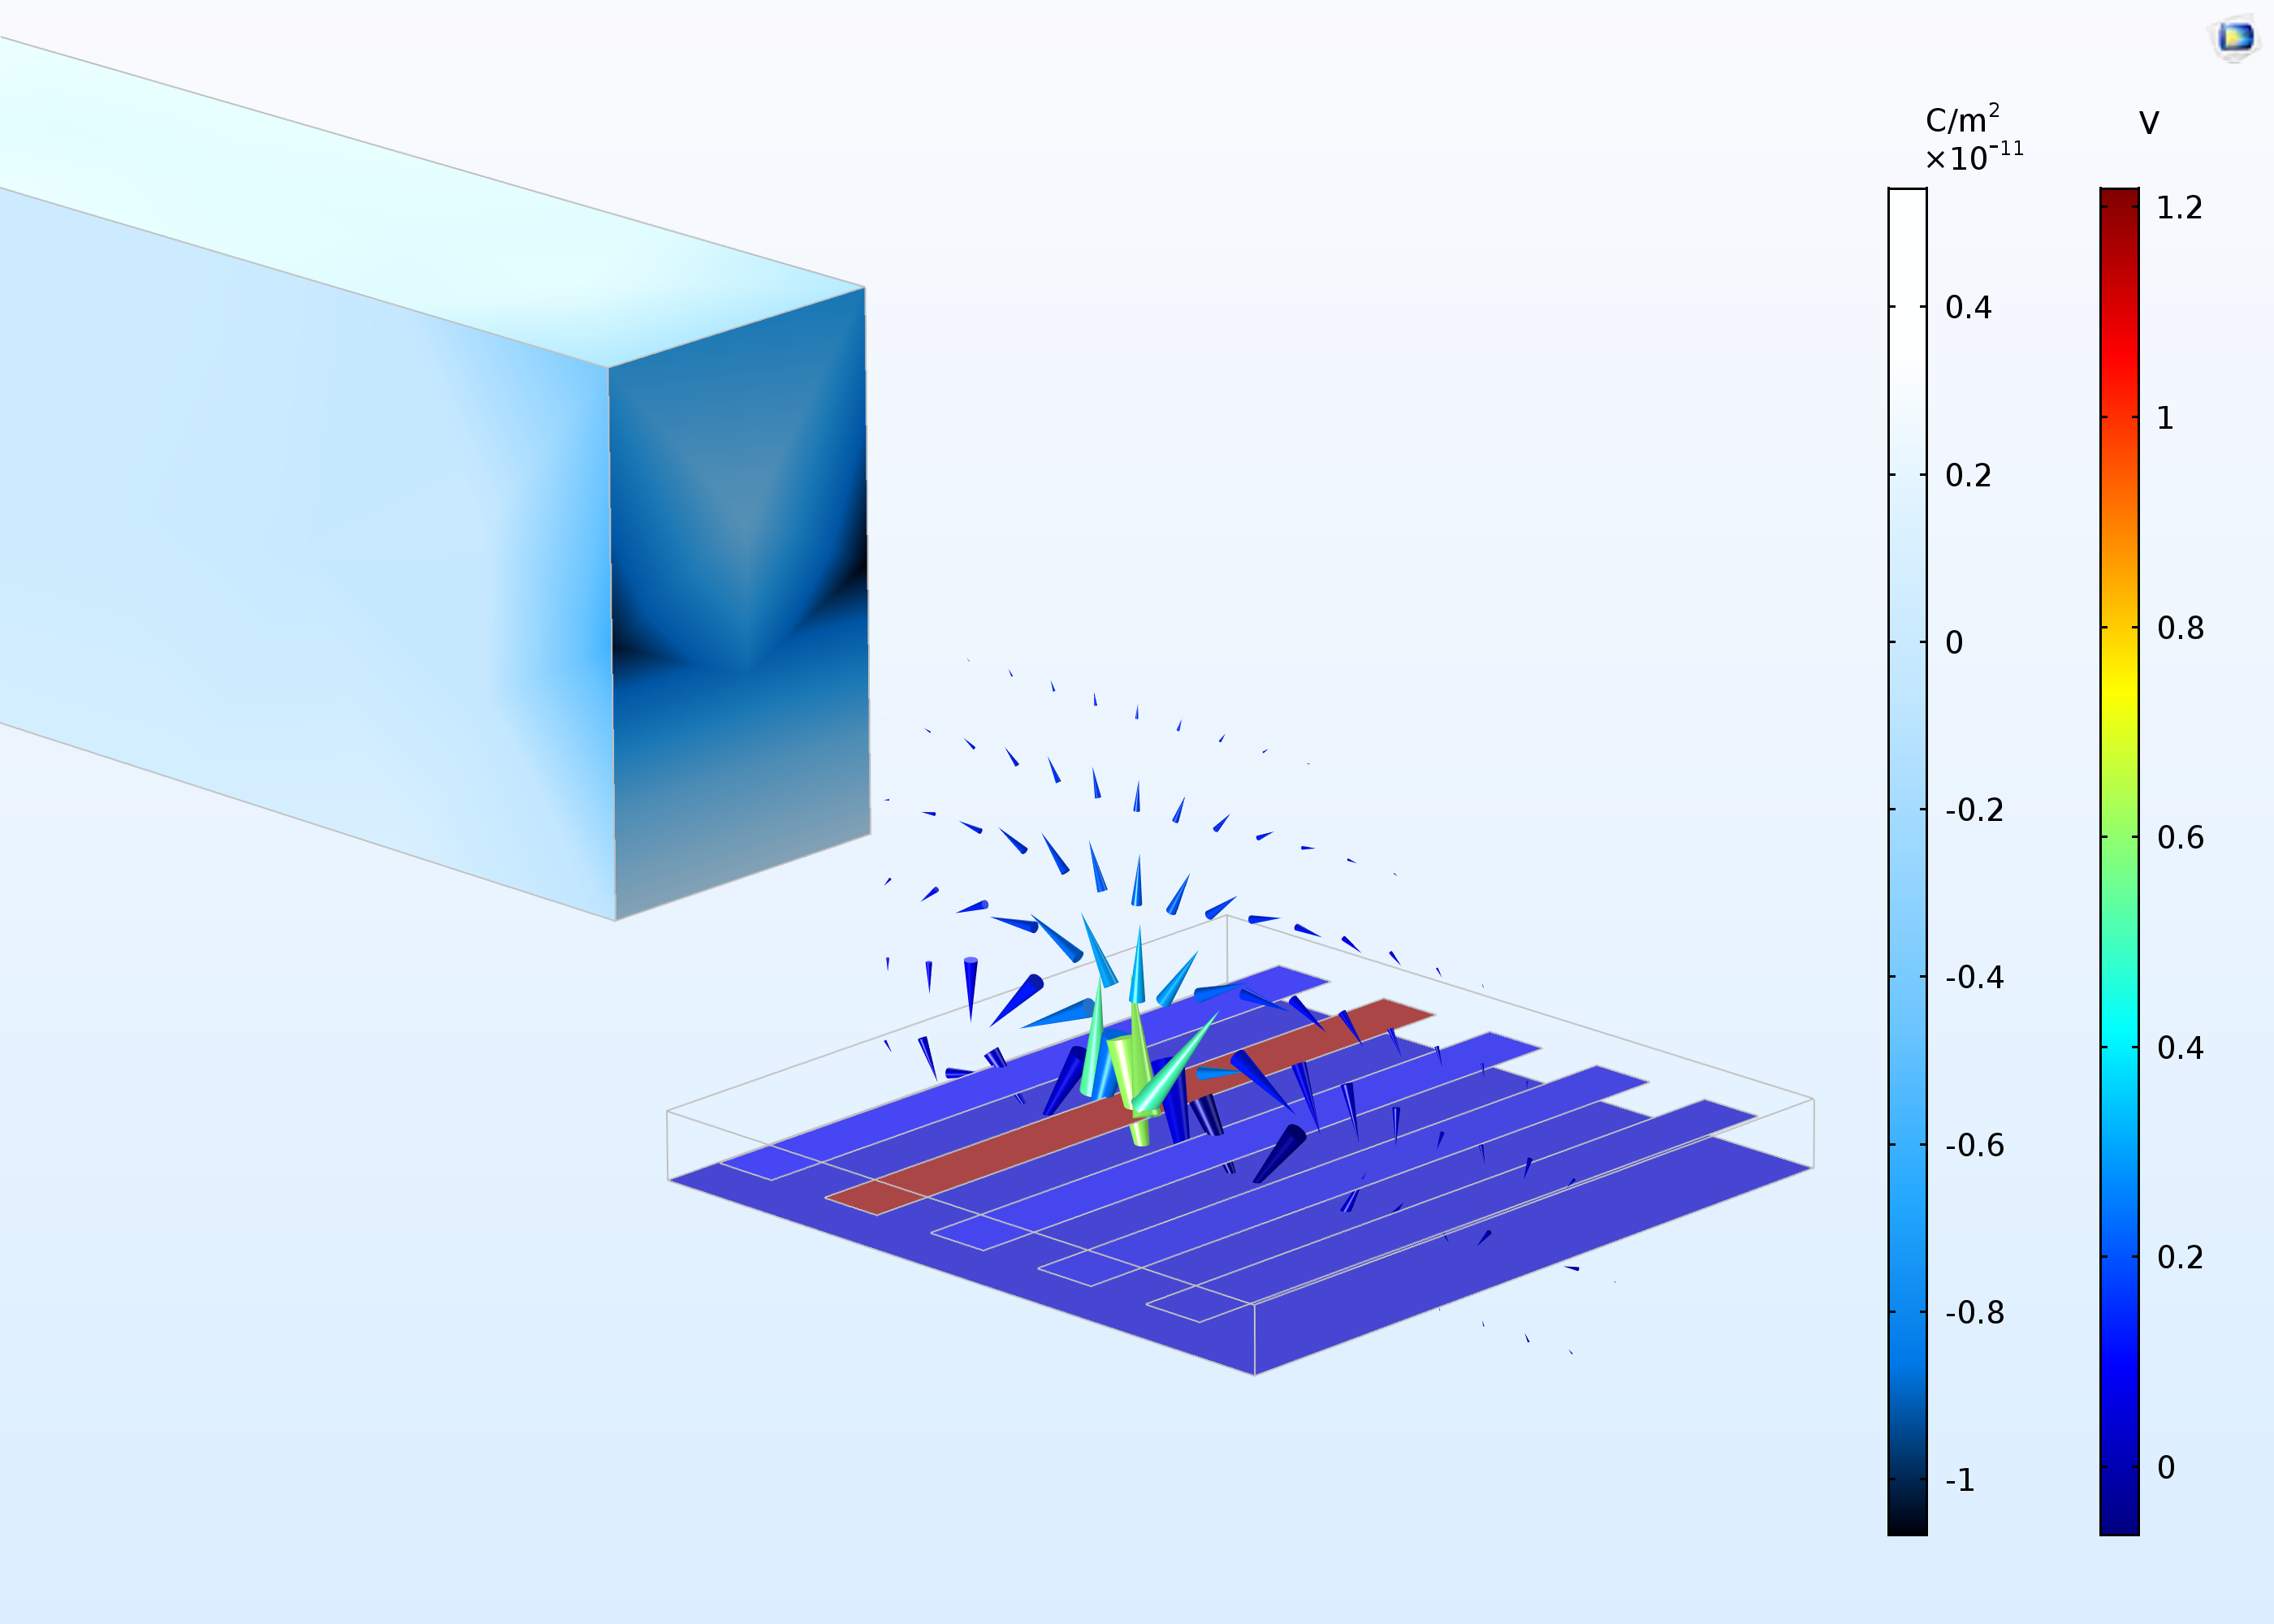 A results plot from the Capacitive Position Sensor tutorial model.